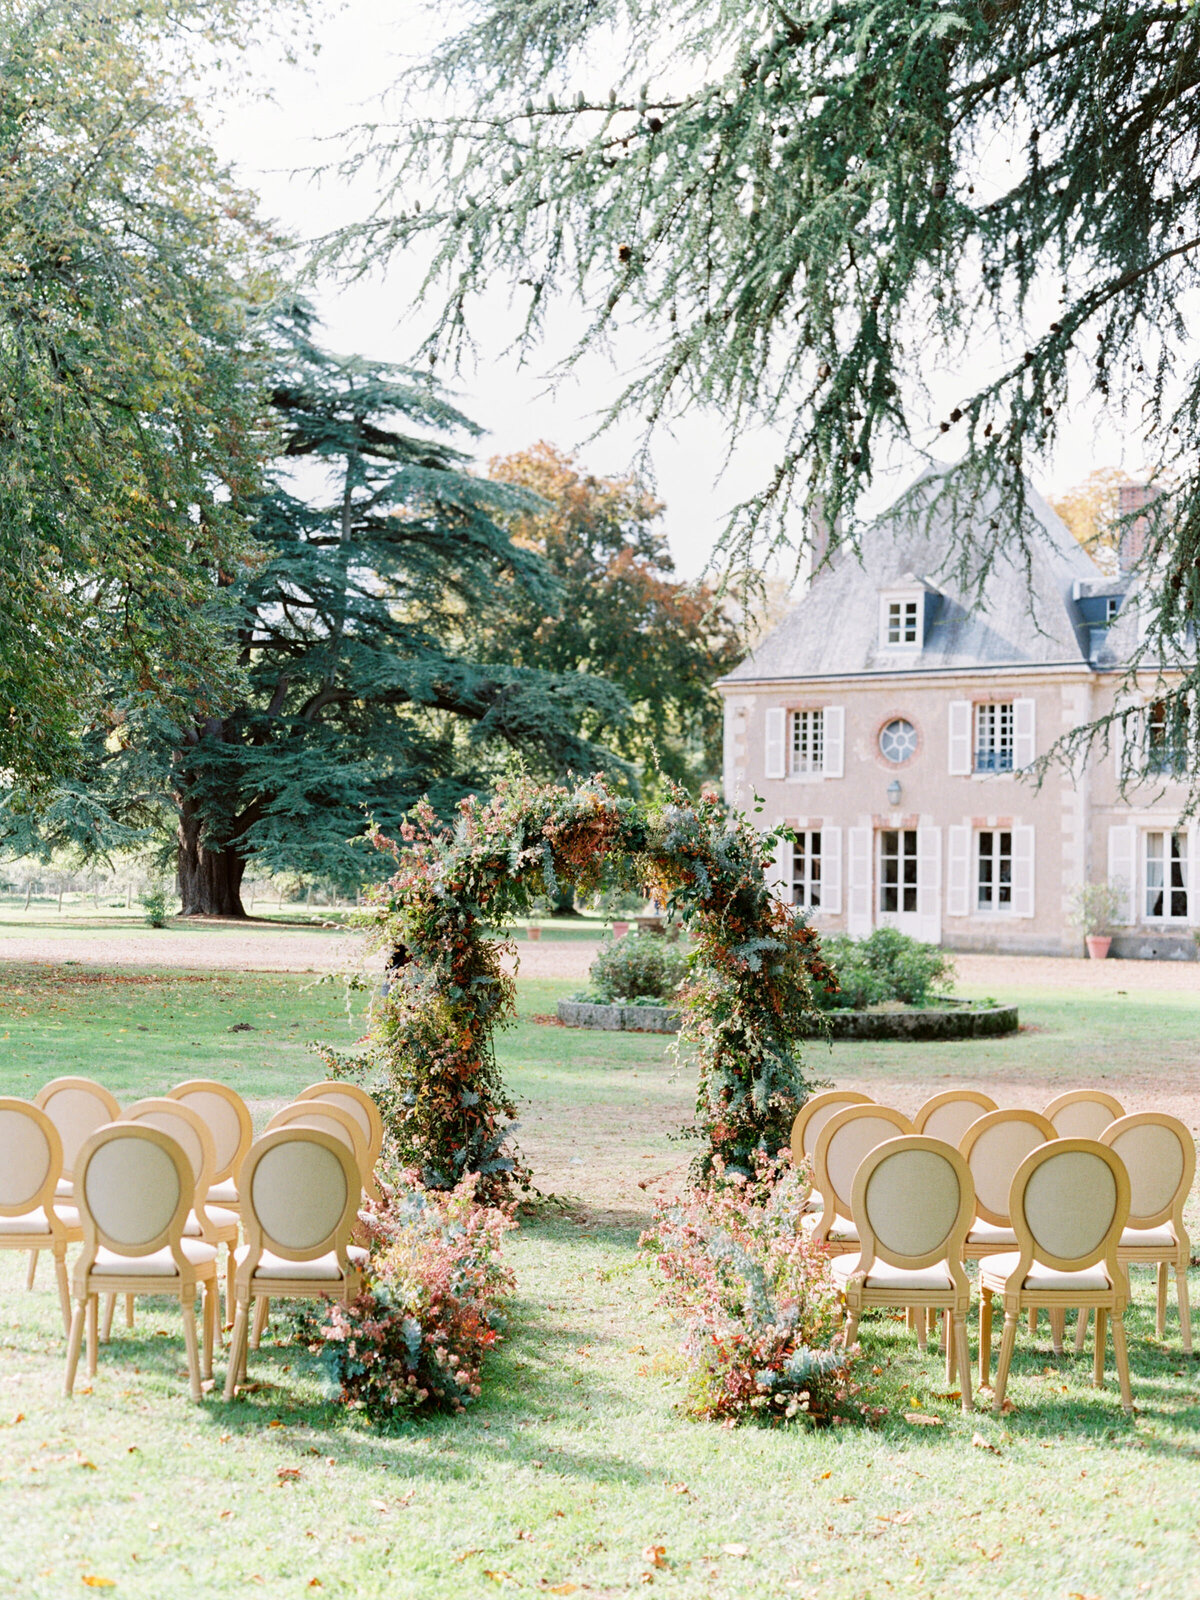 chateau-bouthonvilliers-wedding-paris-wedding-photographer-mackenzie-reiter-photography-37